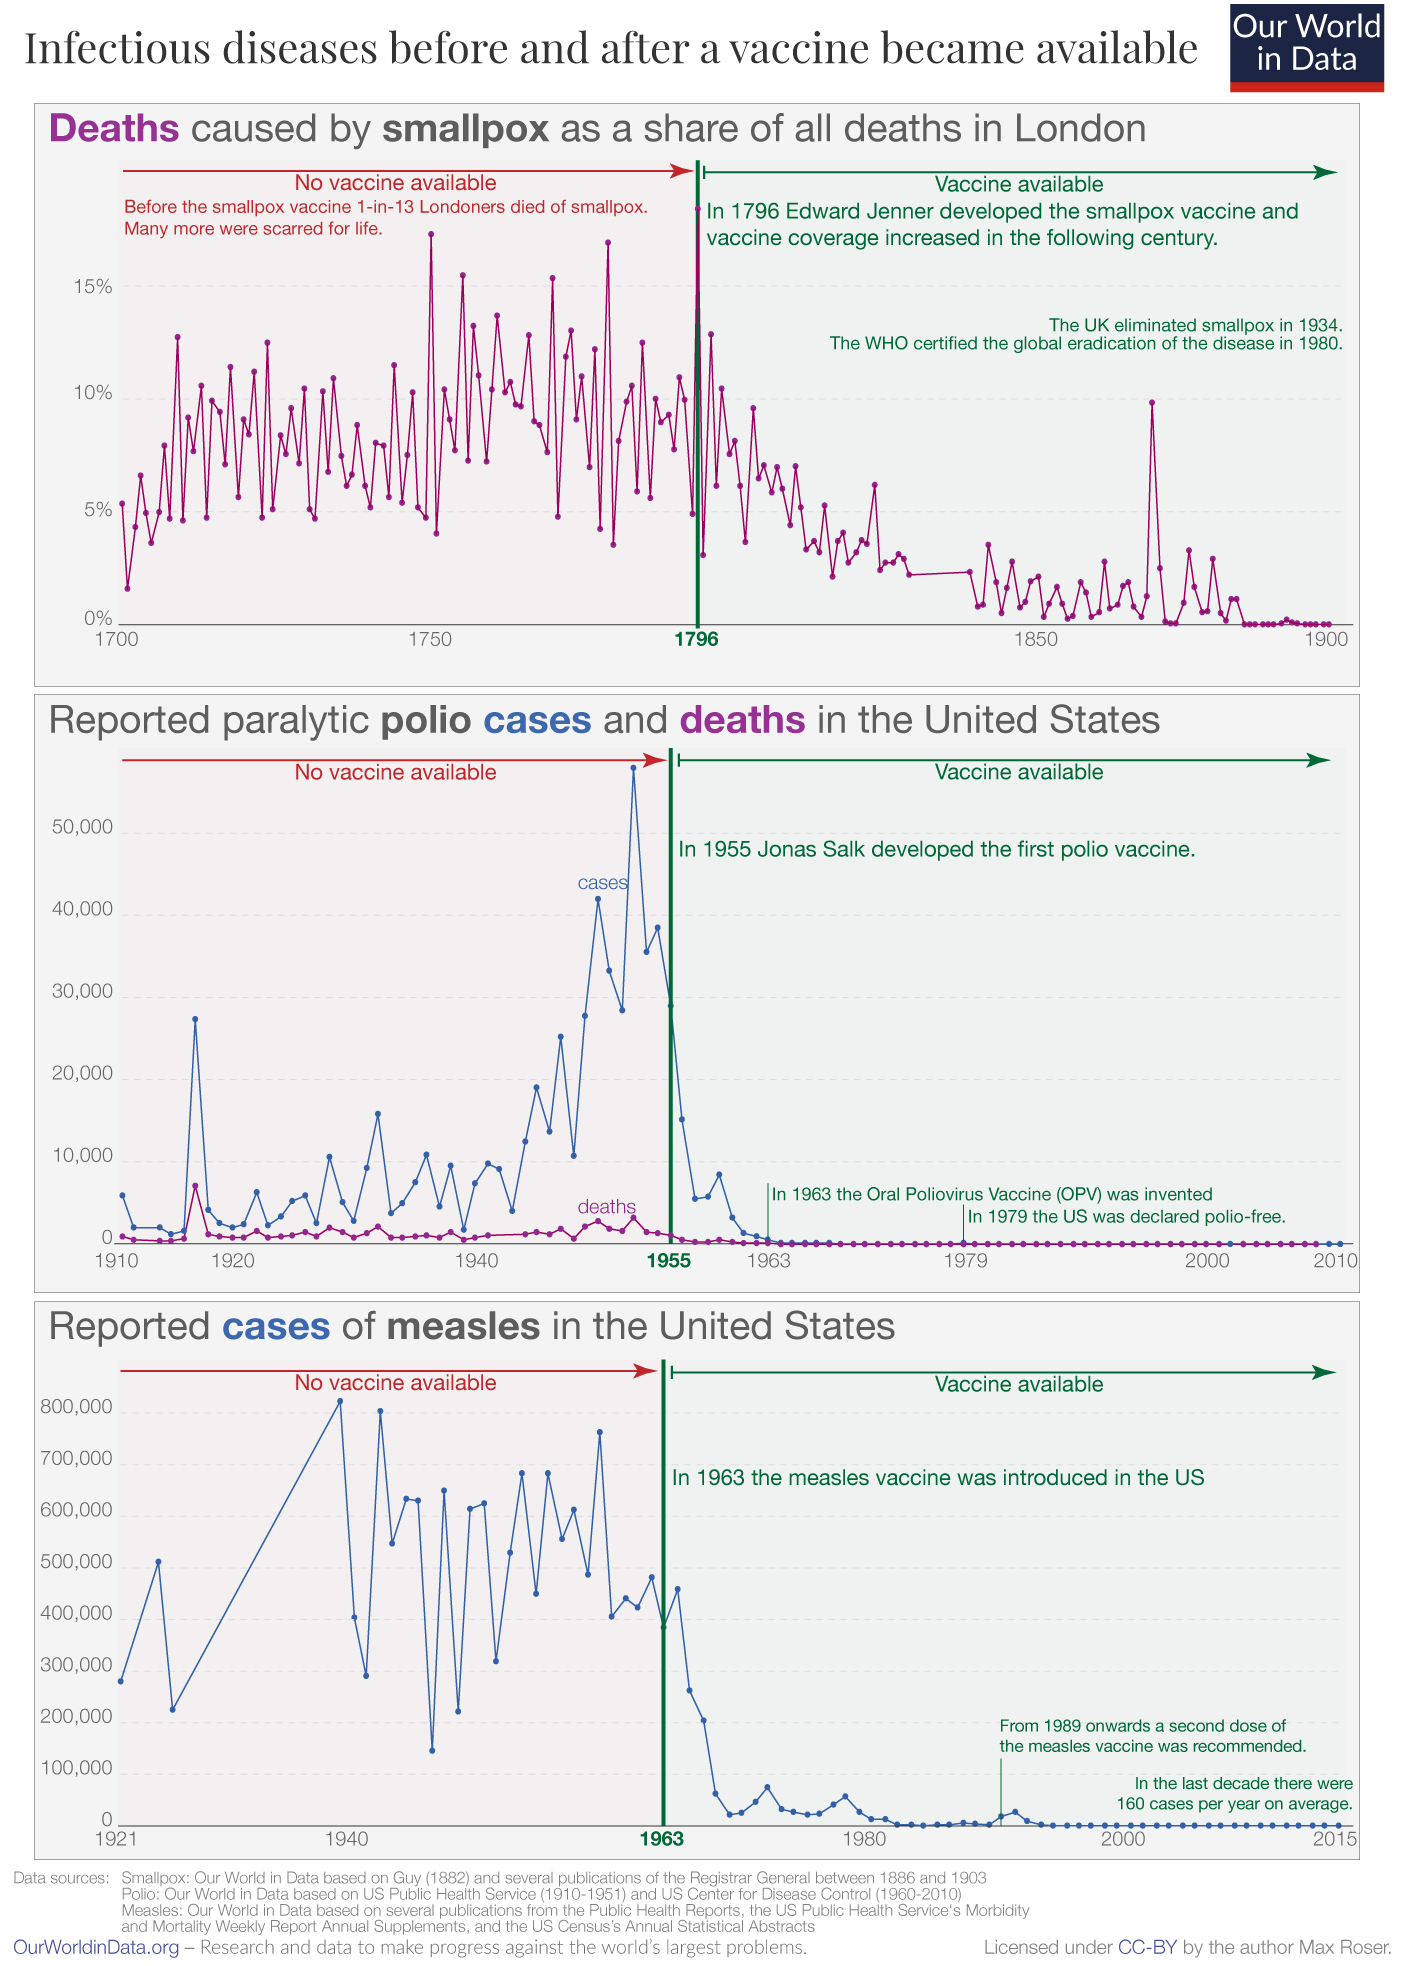 Vaccination introduction and cases or deaths